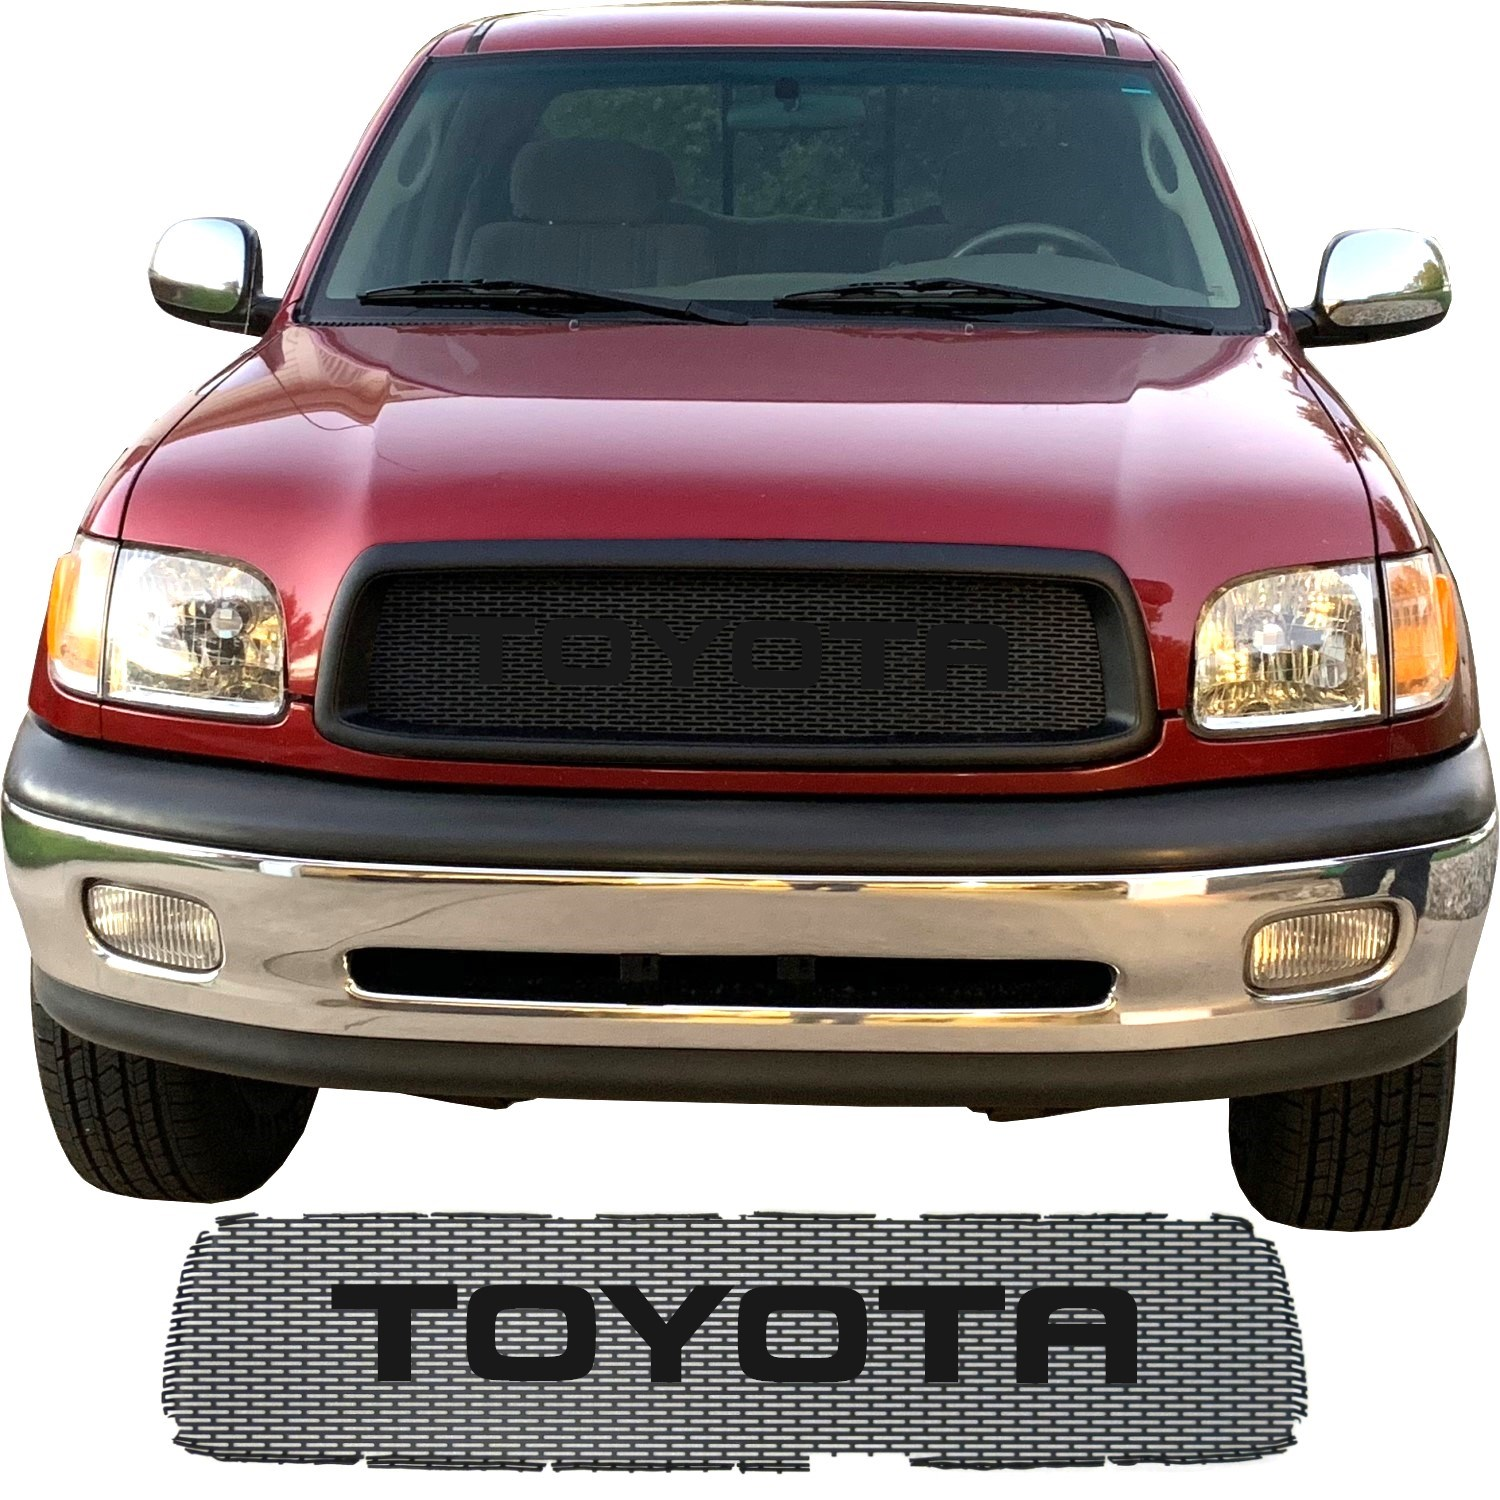 2000-02 Toyota Tundra Grill Mesh with Big Lettering